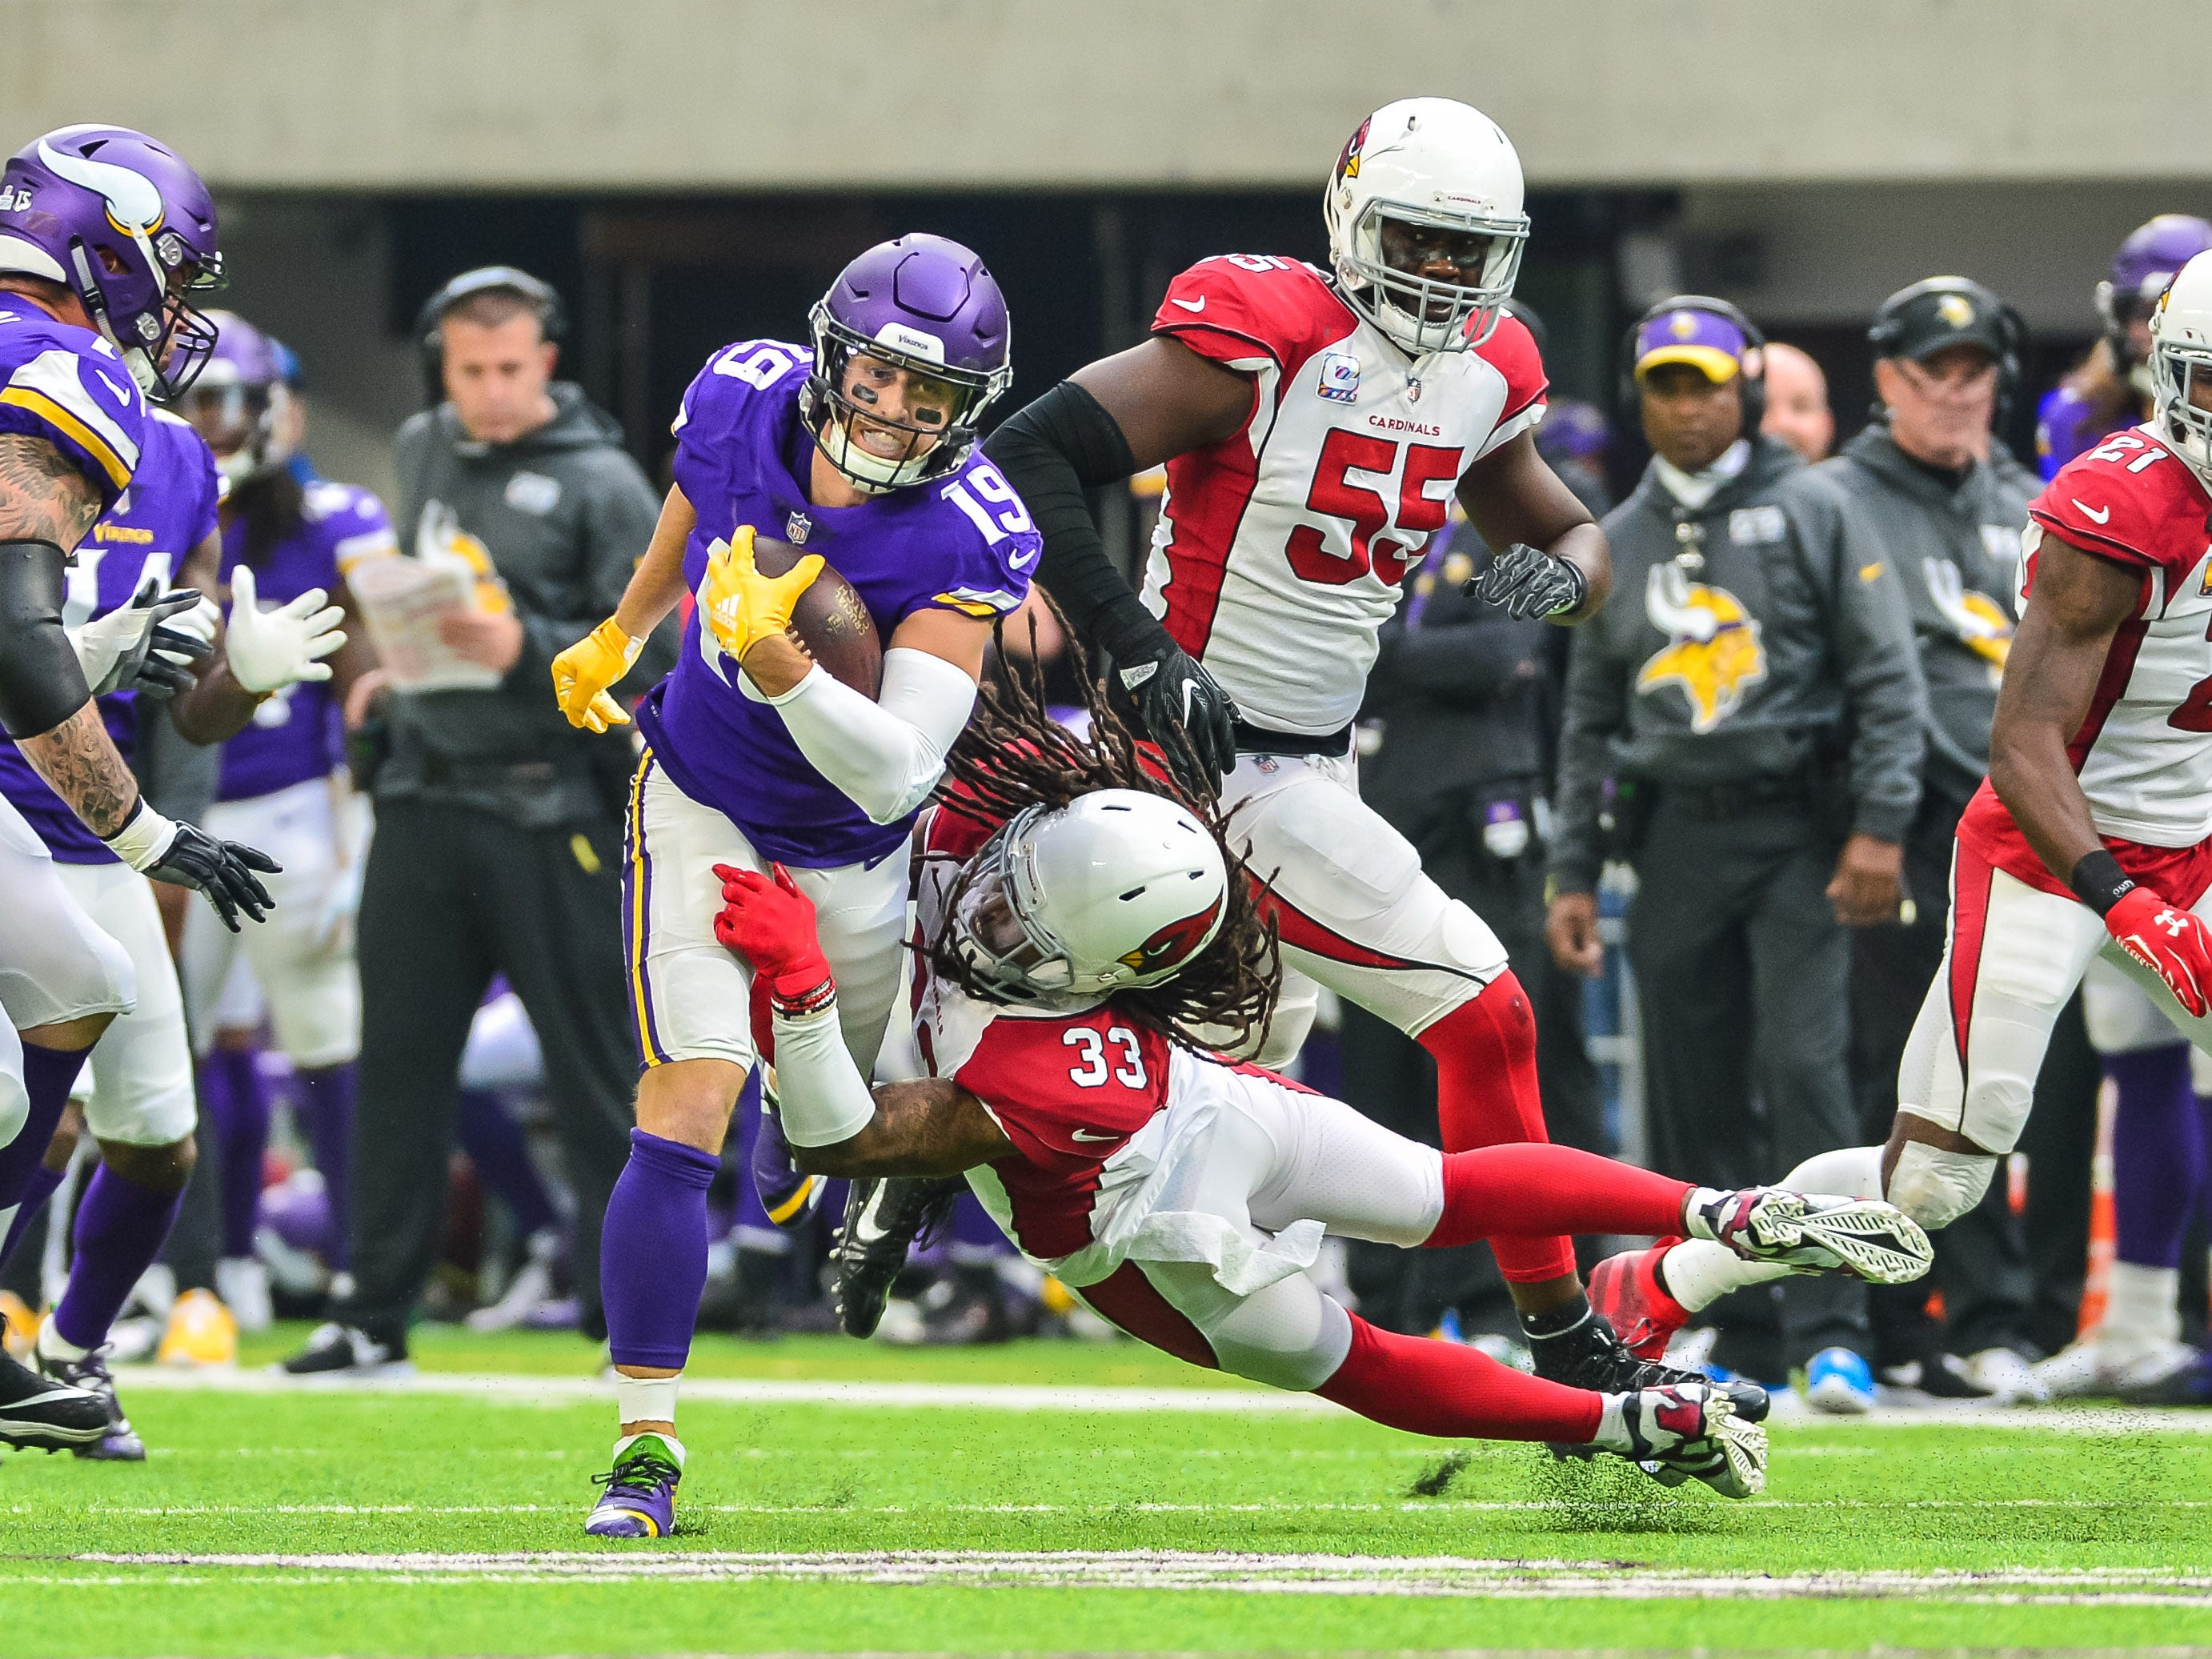 Oct 14, 2018; Minneapolis, MN, USA; Minnesota Vikings wide receiver Adam Thielen (19) is tackled by Arizona Cardinals defensive back Tre Boston (33) during the first quarter at U.S. Bank Stadium. Mandatory Credit: Jeffrey Becker-USA TODAY Sports